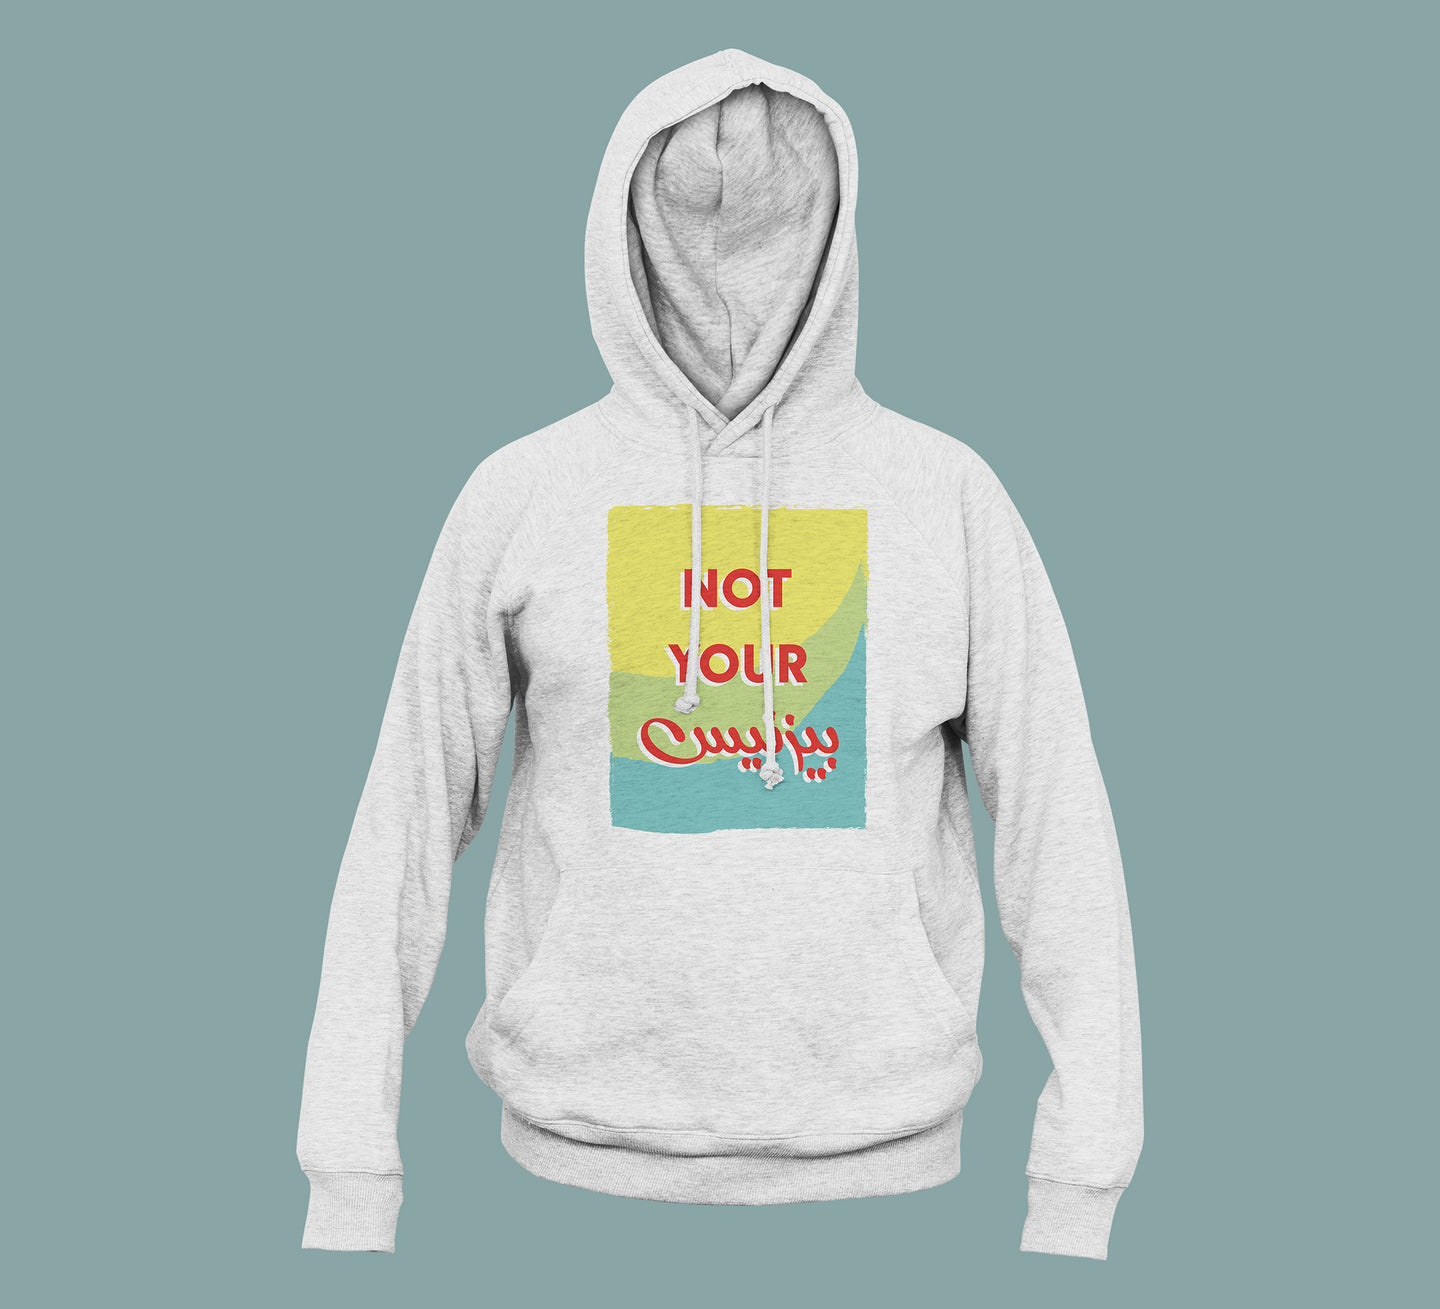 Not Your Business - Hoodie